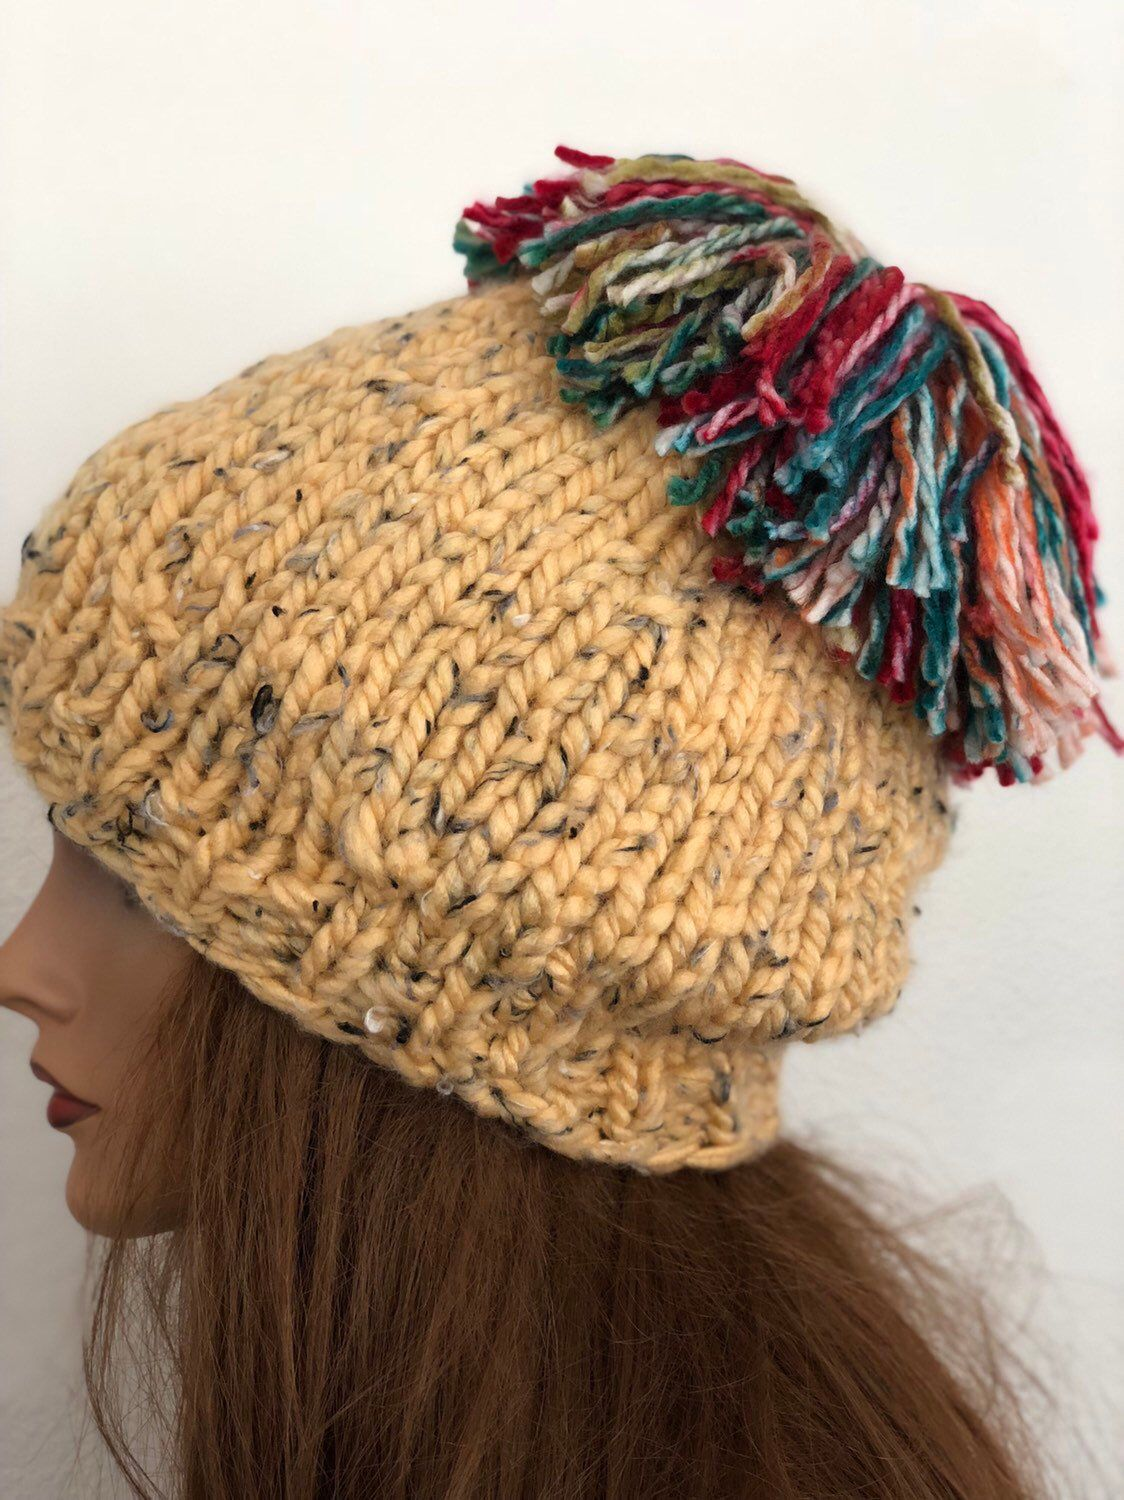 f40e24f4 Excited to share this item from my #etsy shop: Hand Knits 2 Love Hat Beanie  Cap Designer Fashion Tweed Pom Pom Hip Trendy Ski Snow Female Teen Gift ...